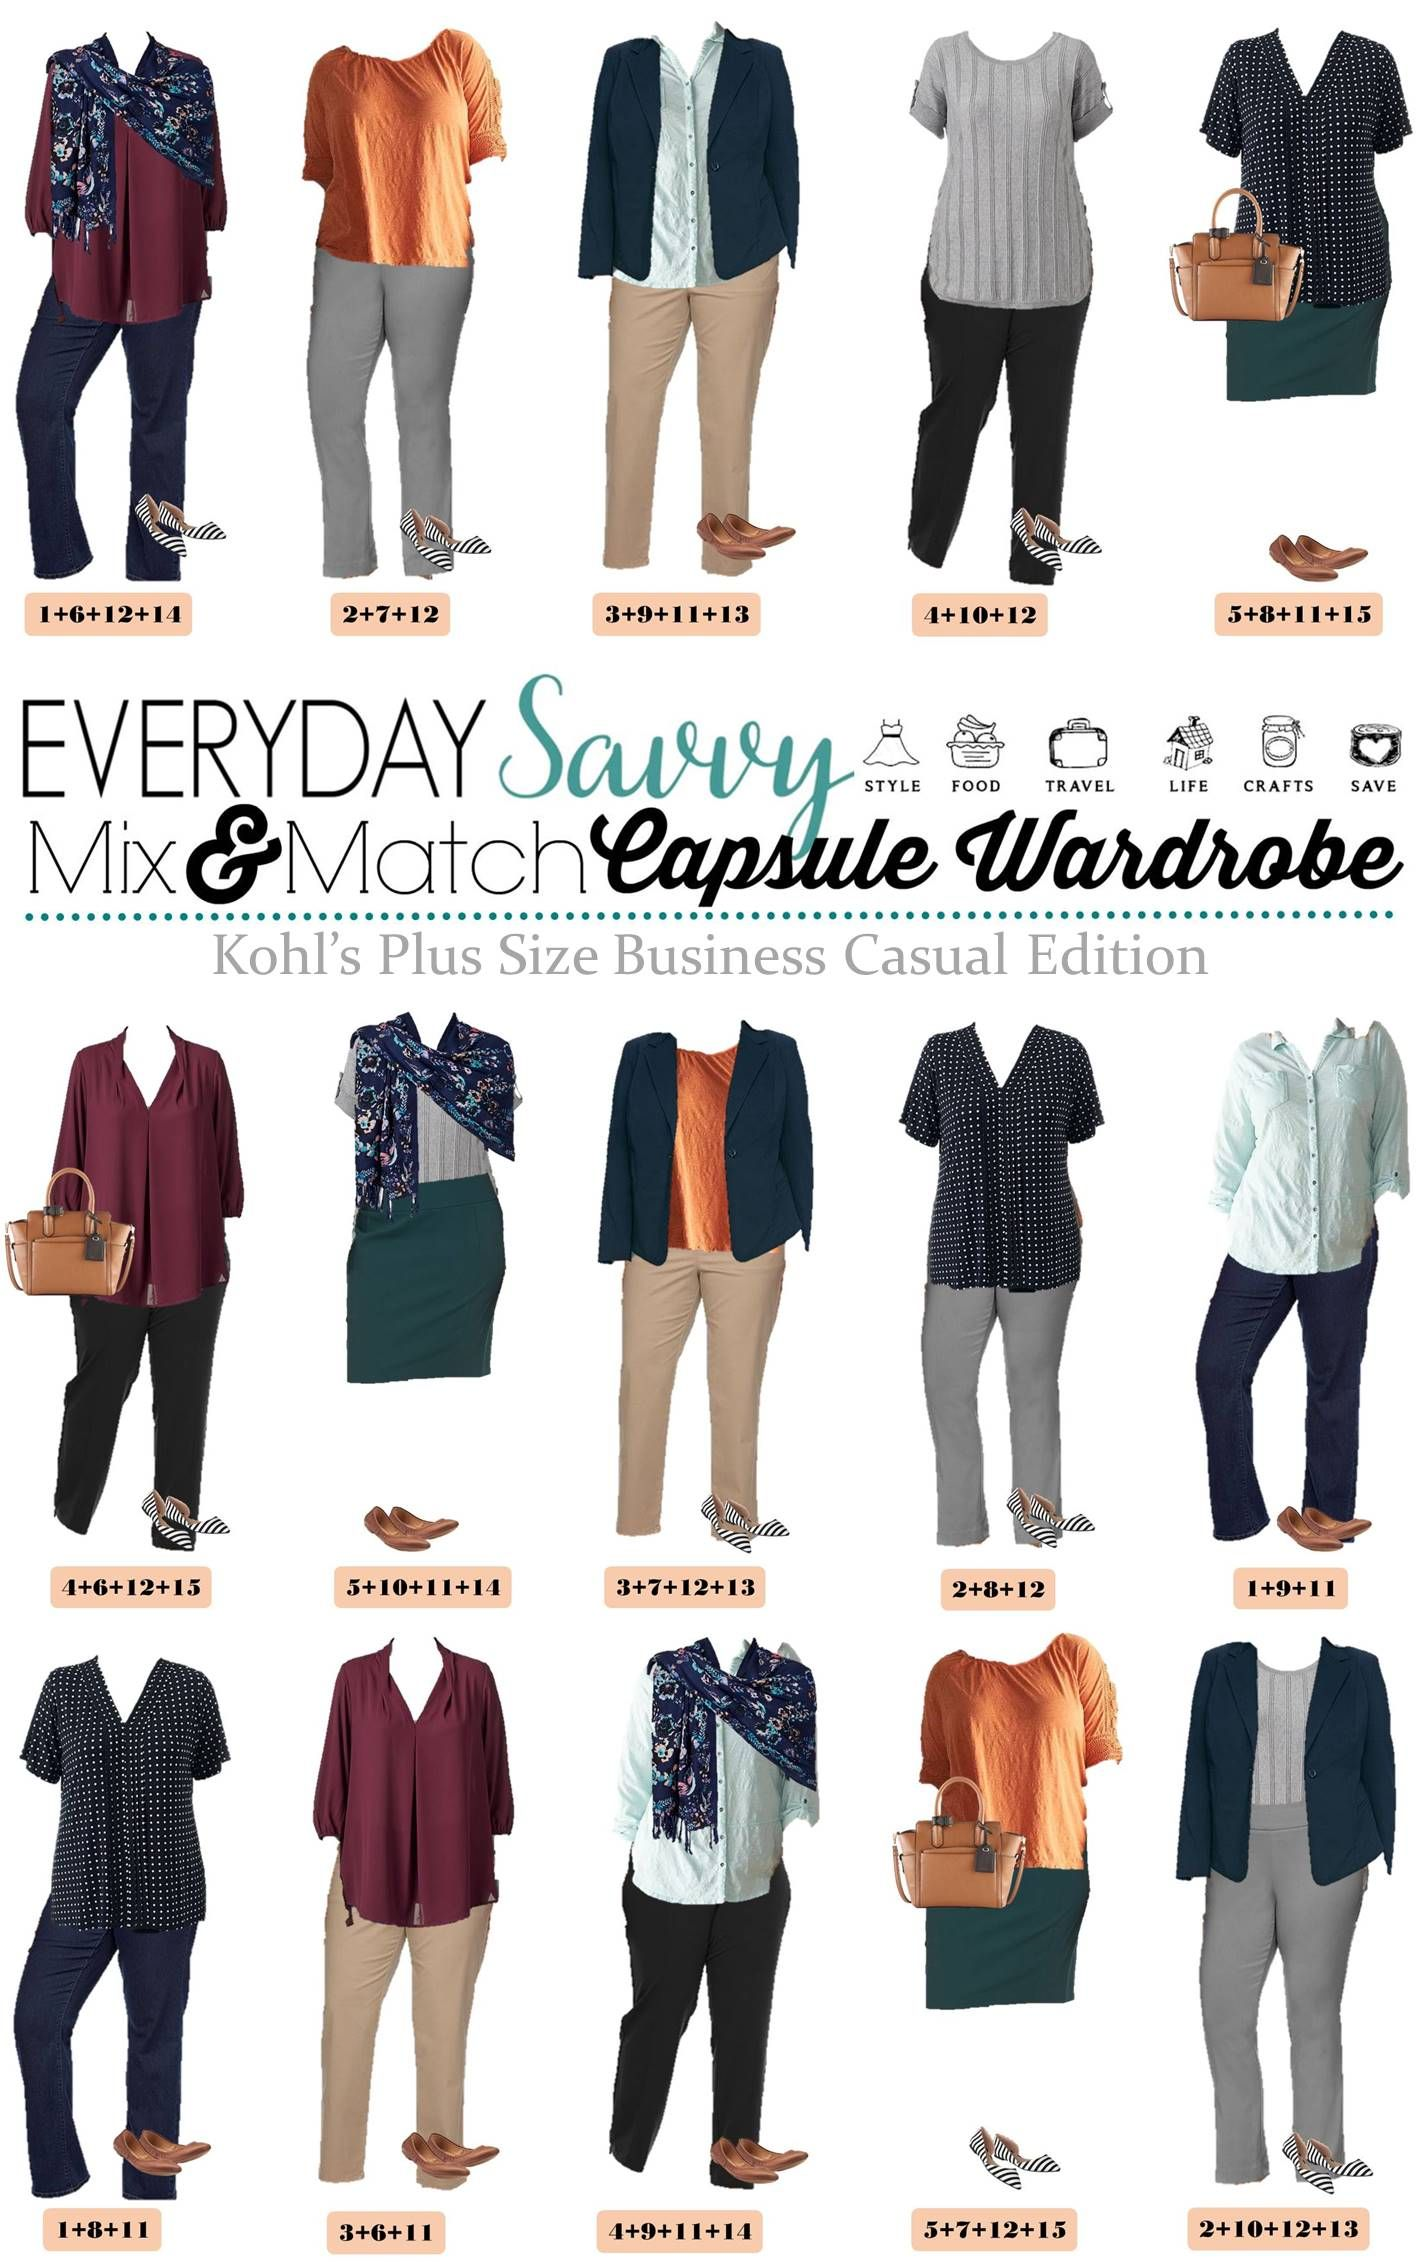 kohls plus size business casual outfit ideas for spring | mix